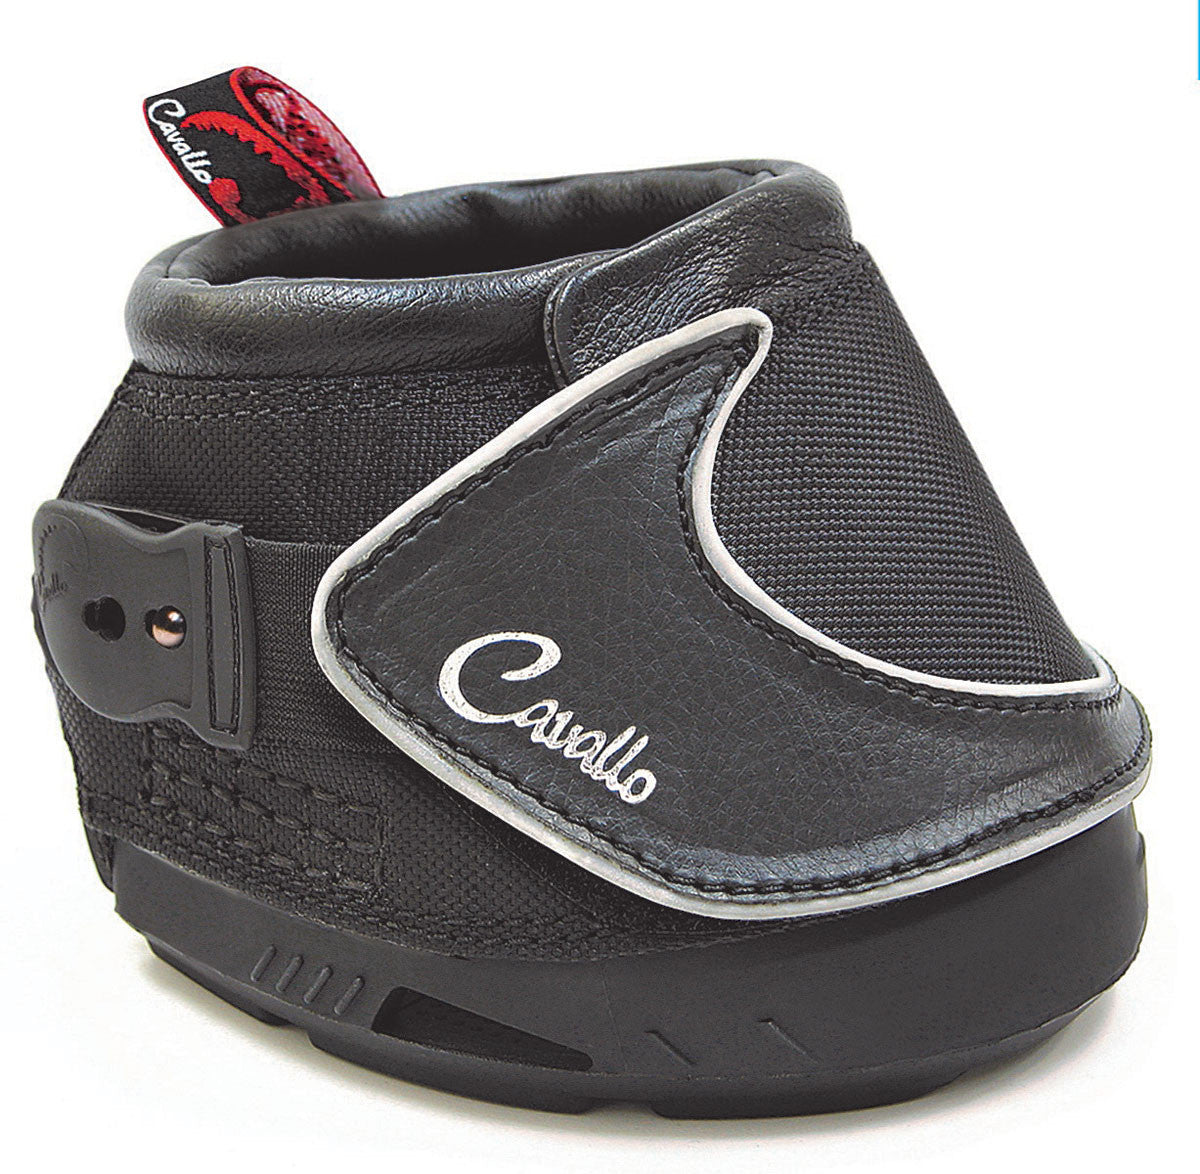 Cavallo Sport Regular Sole Hoof Boot - Cavallo - Breeches.com